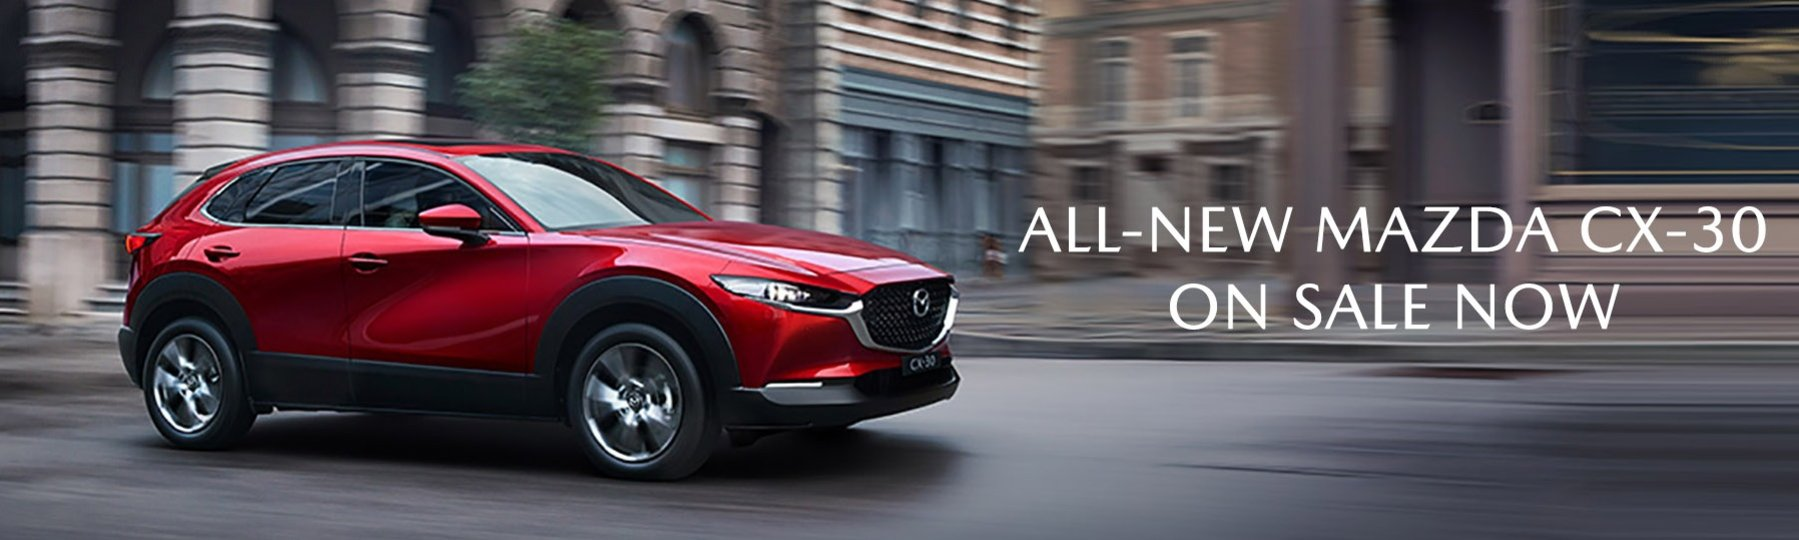 All-New CX-30 On Sale Now